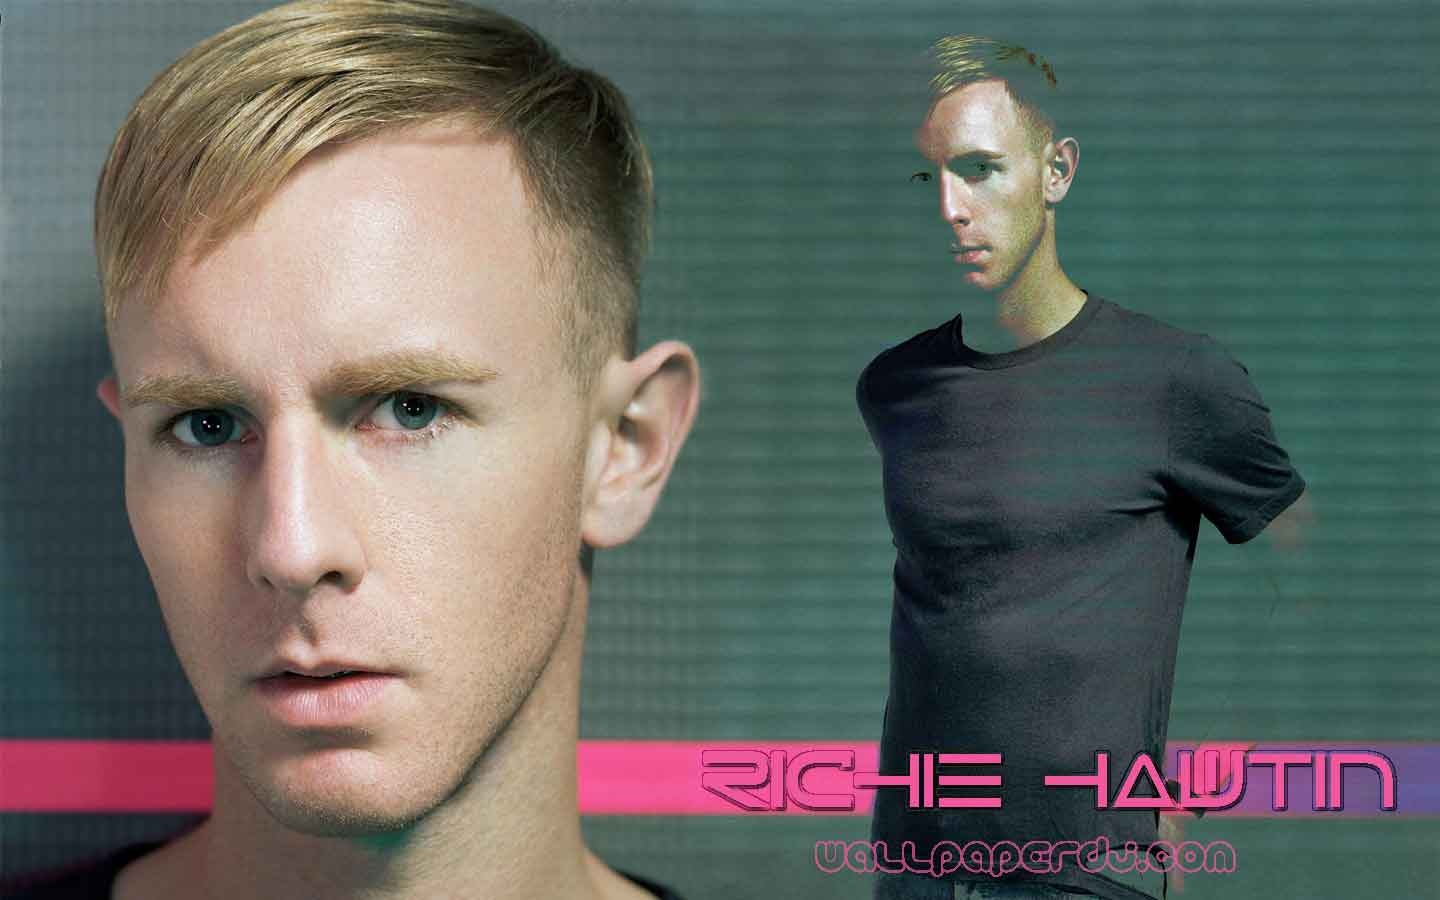 Dj Richie Hawtin Wallpaper